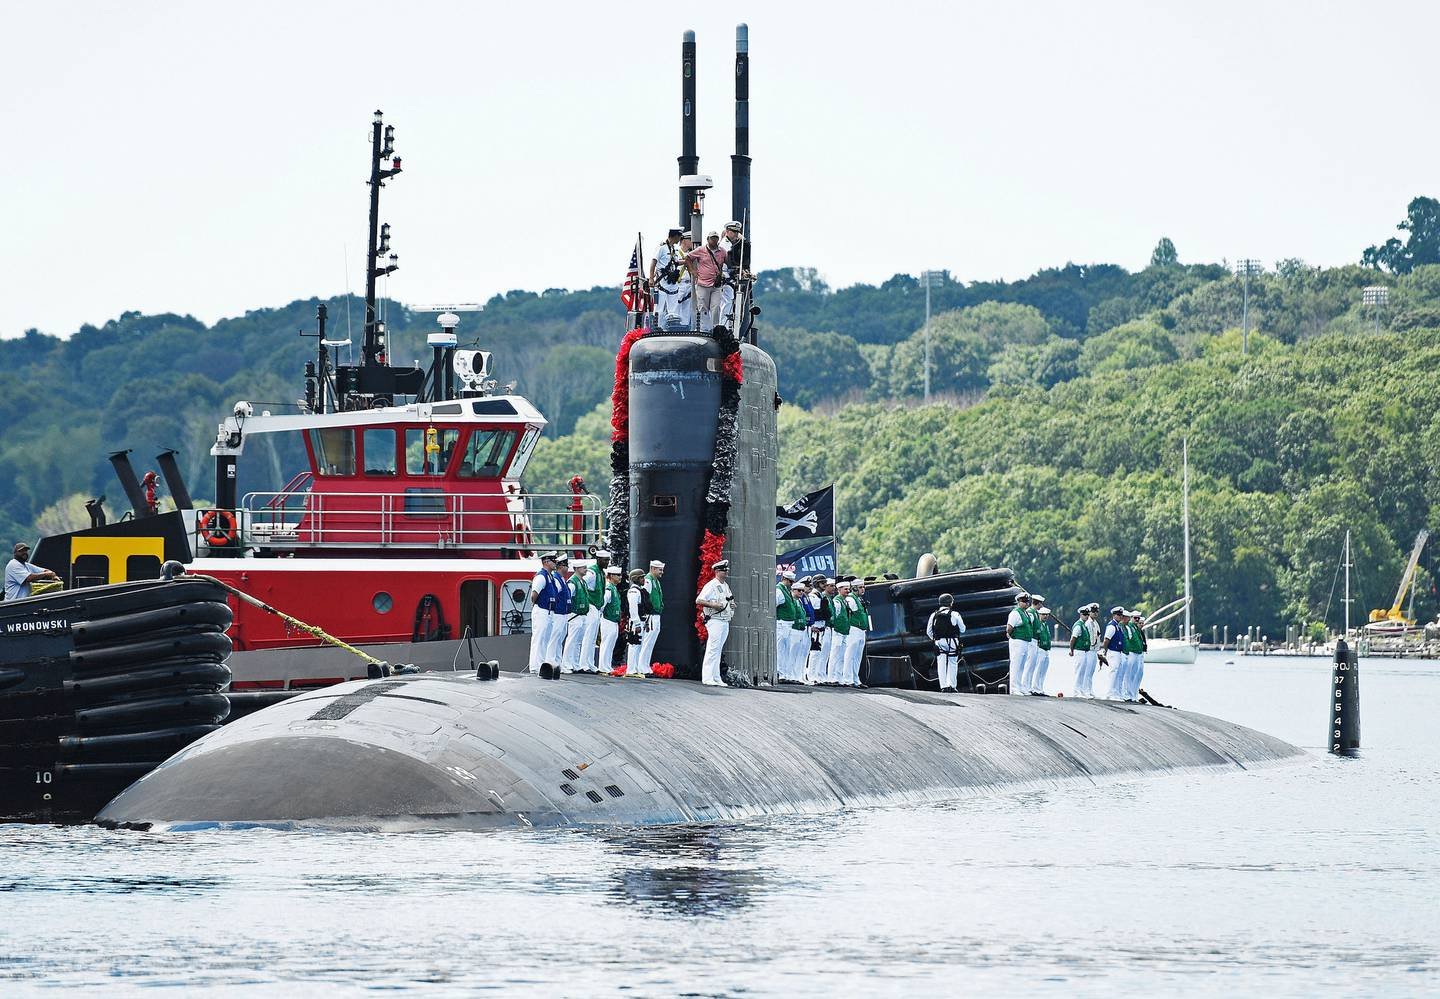 The US Navy attack submarine USS San Juan (SSN 751) returns to a base in Groton, Connecticut after a nearly eight-month deployment. Photo / Sean D. Elliot, The Day via AP